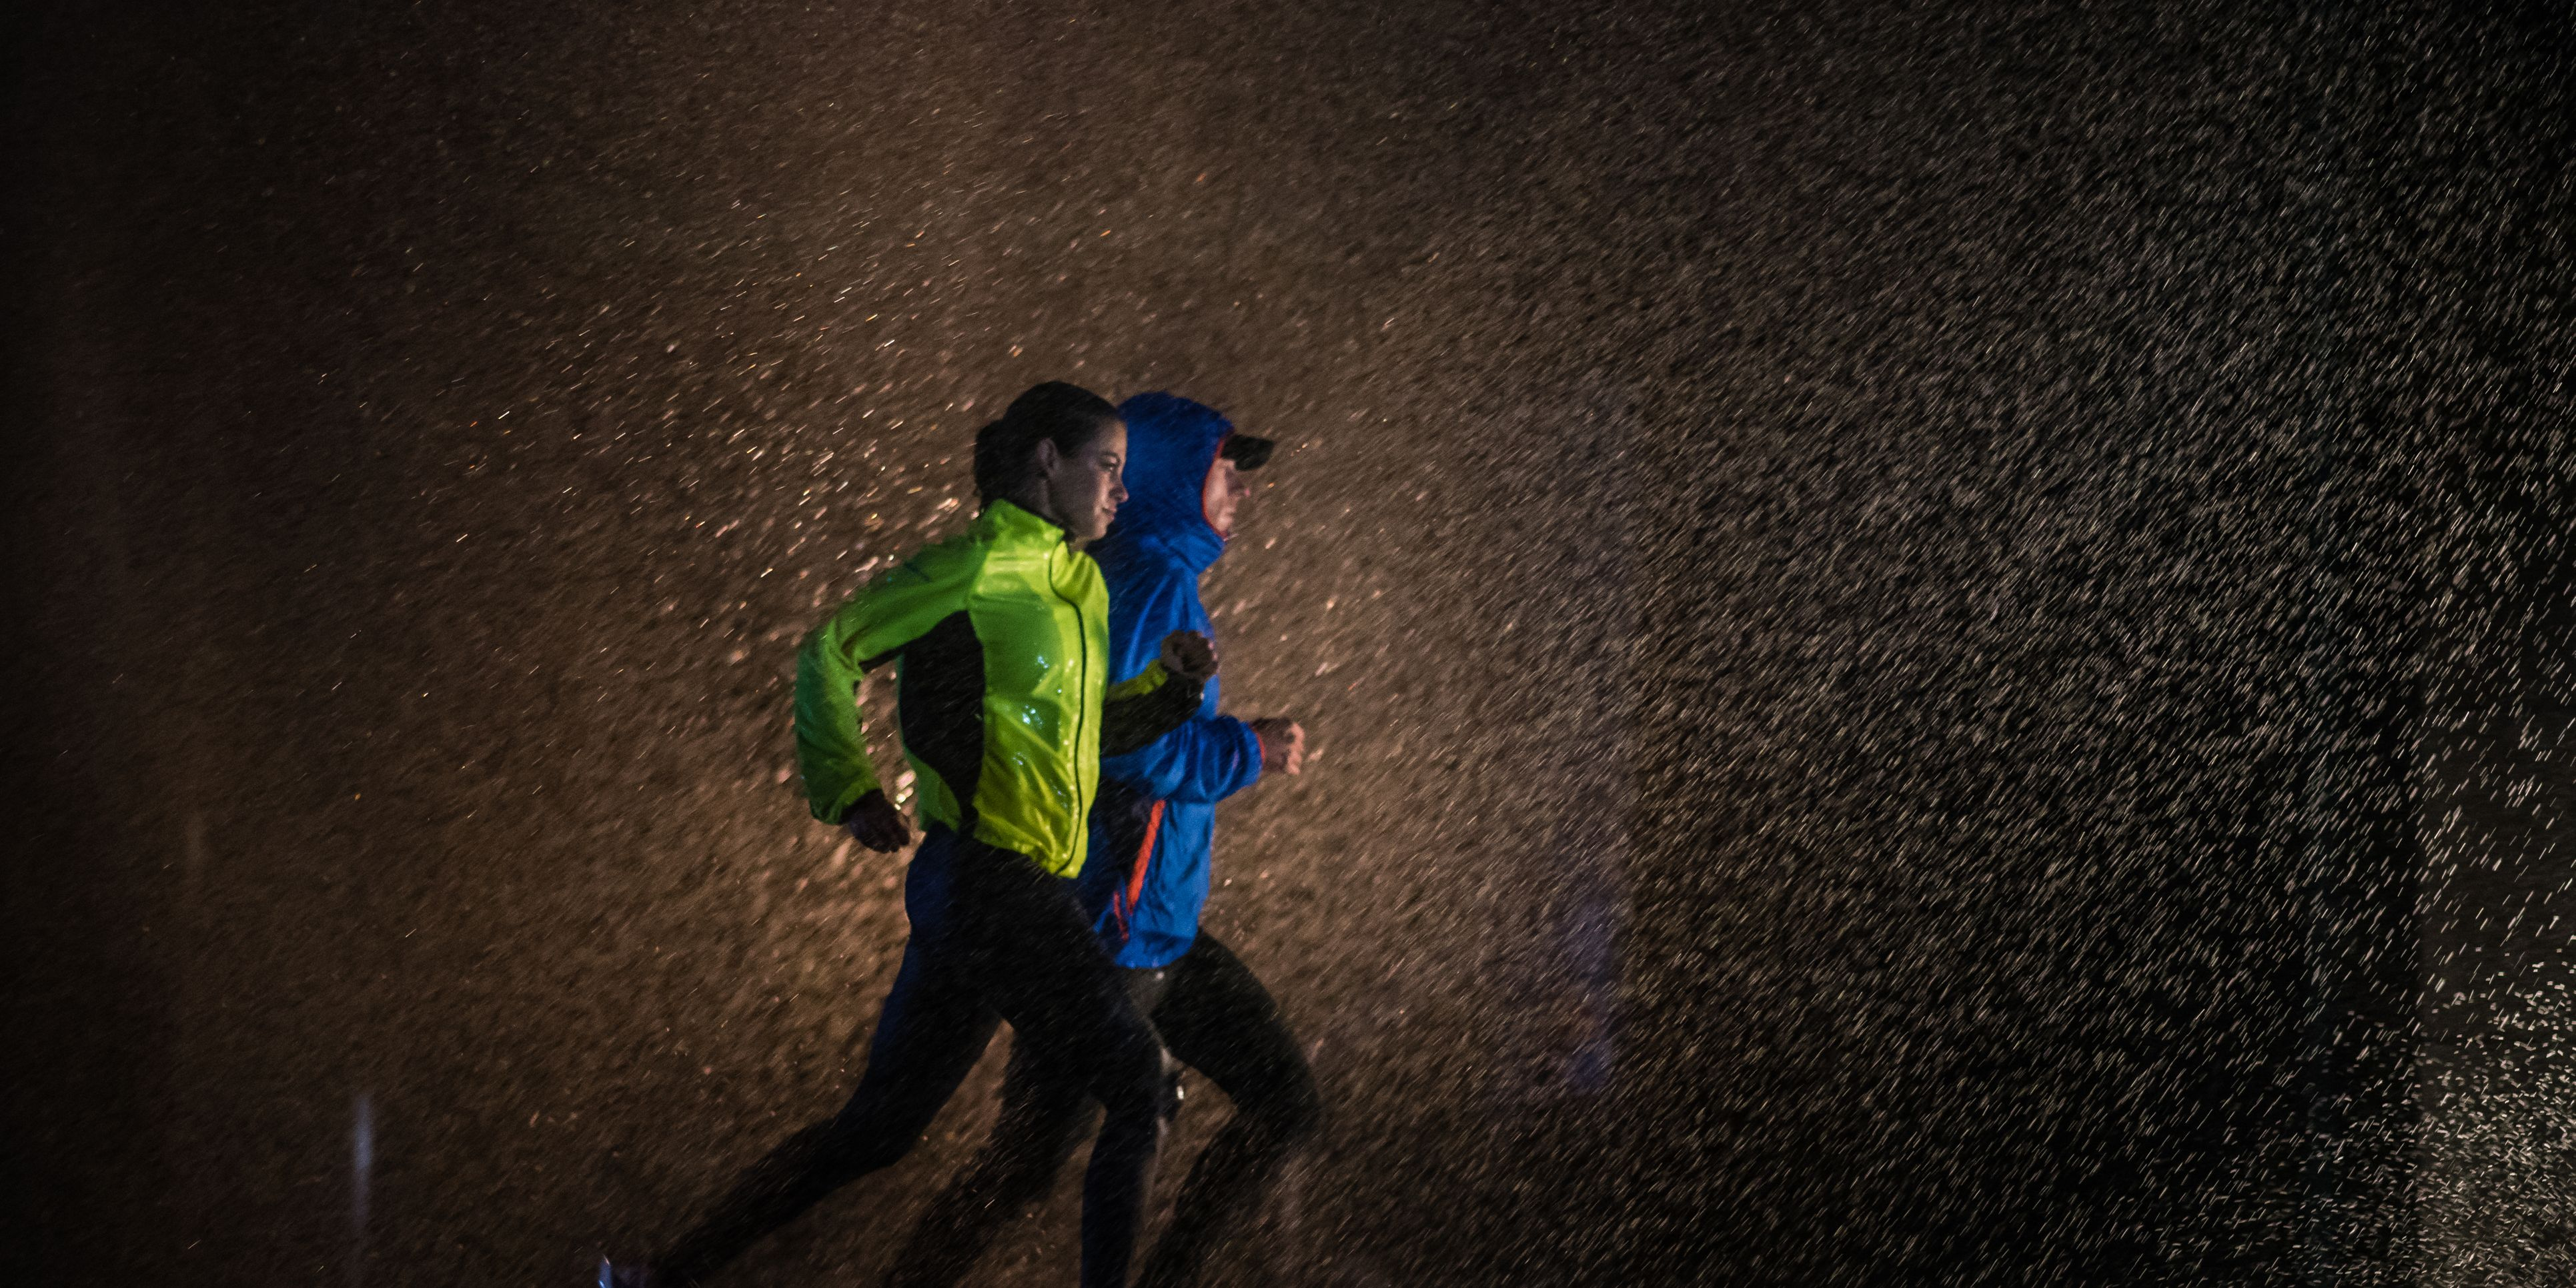 Man and woman jogging in city